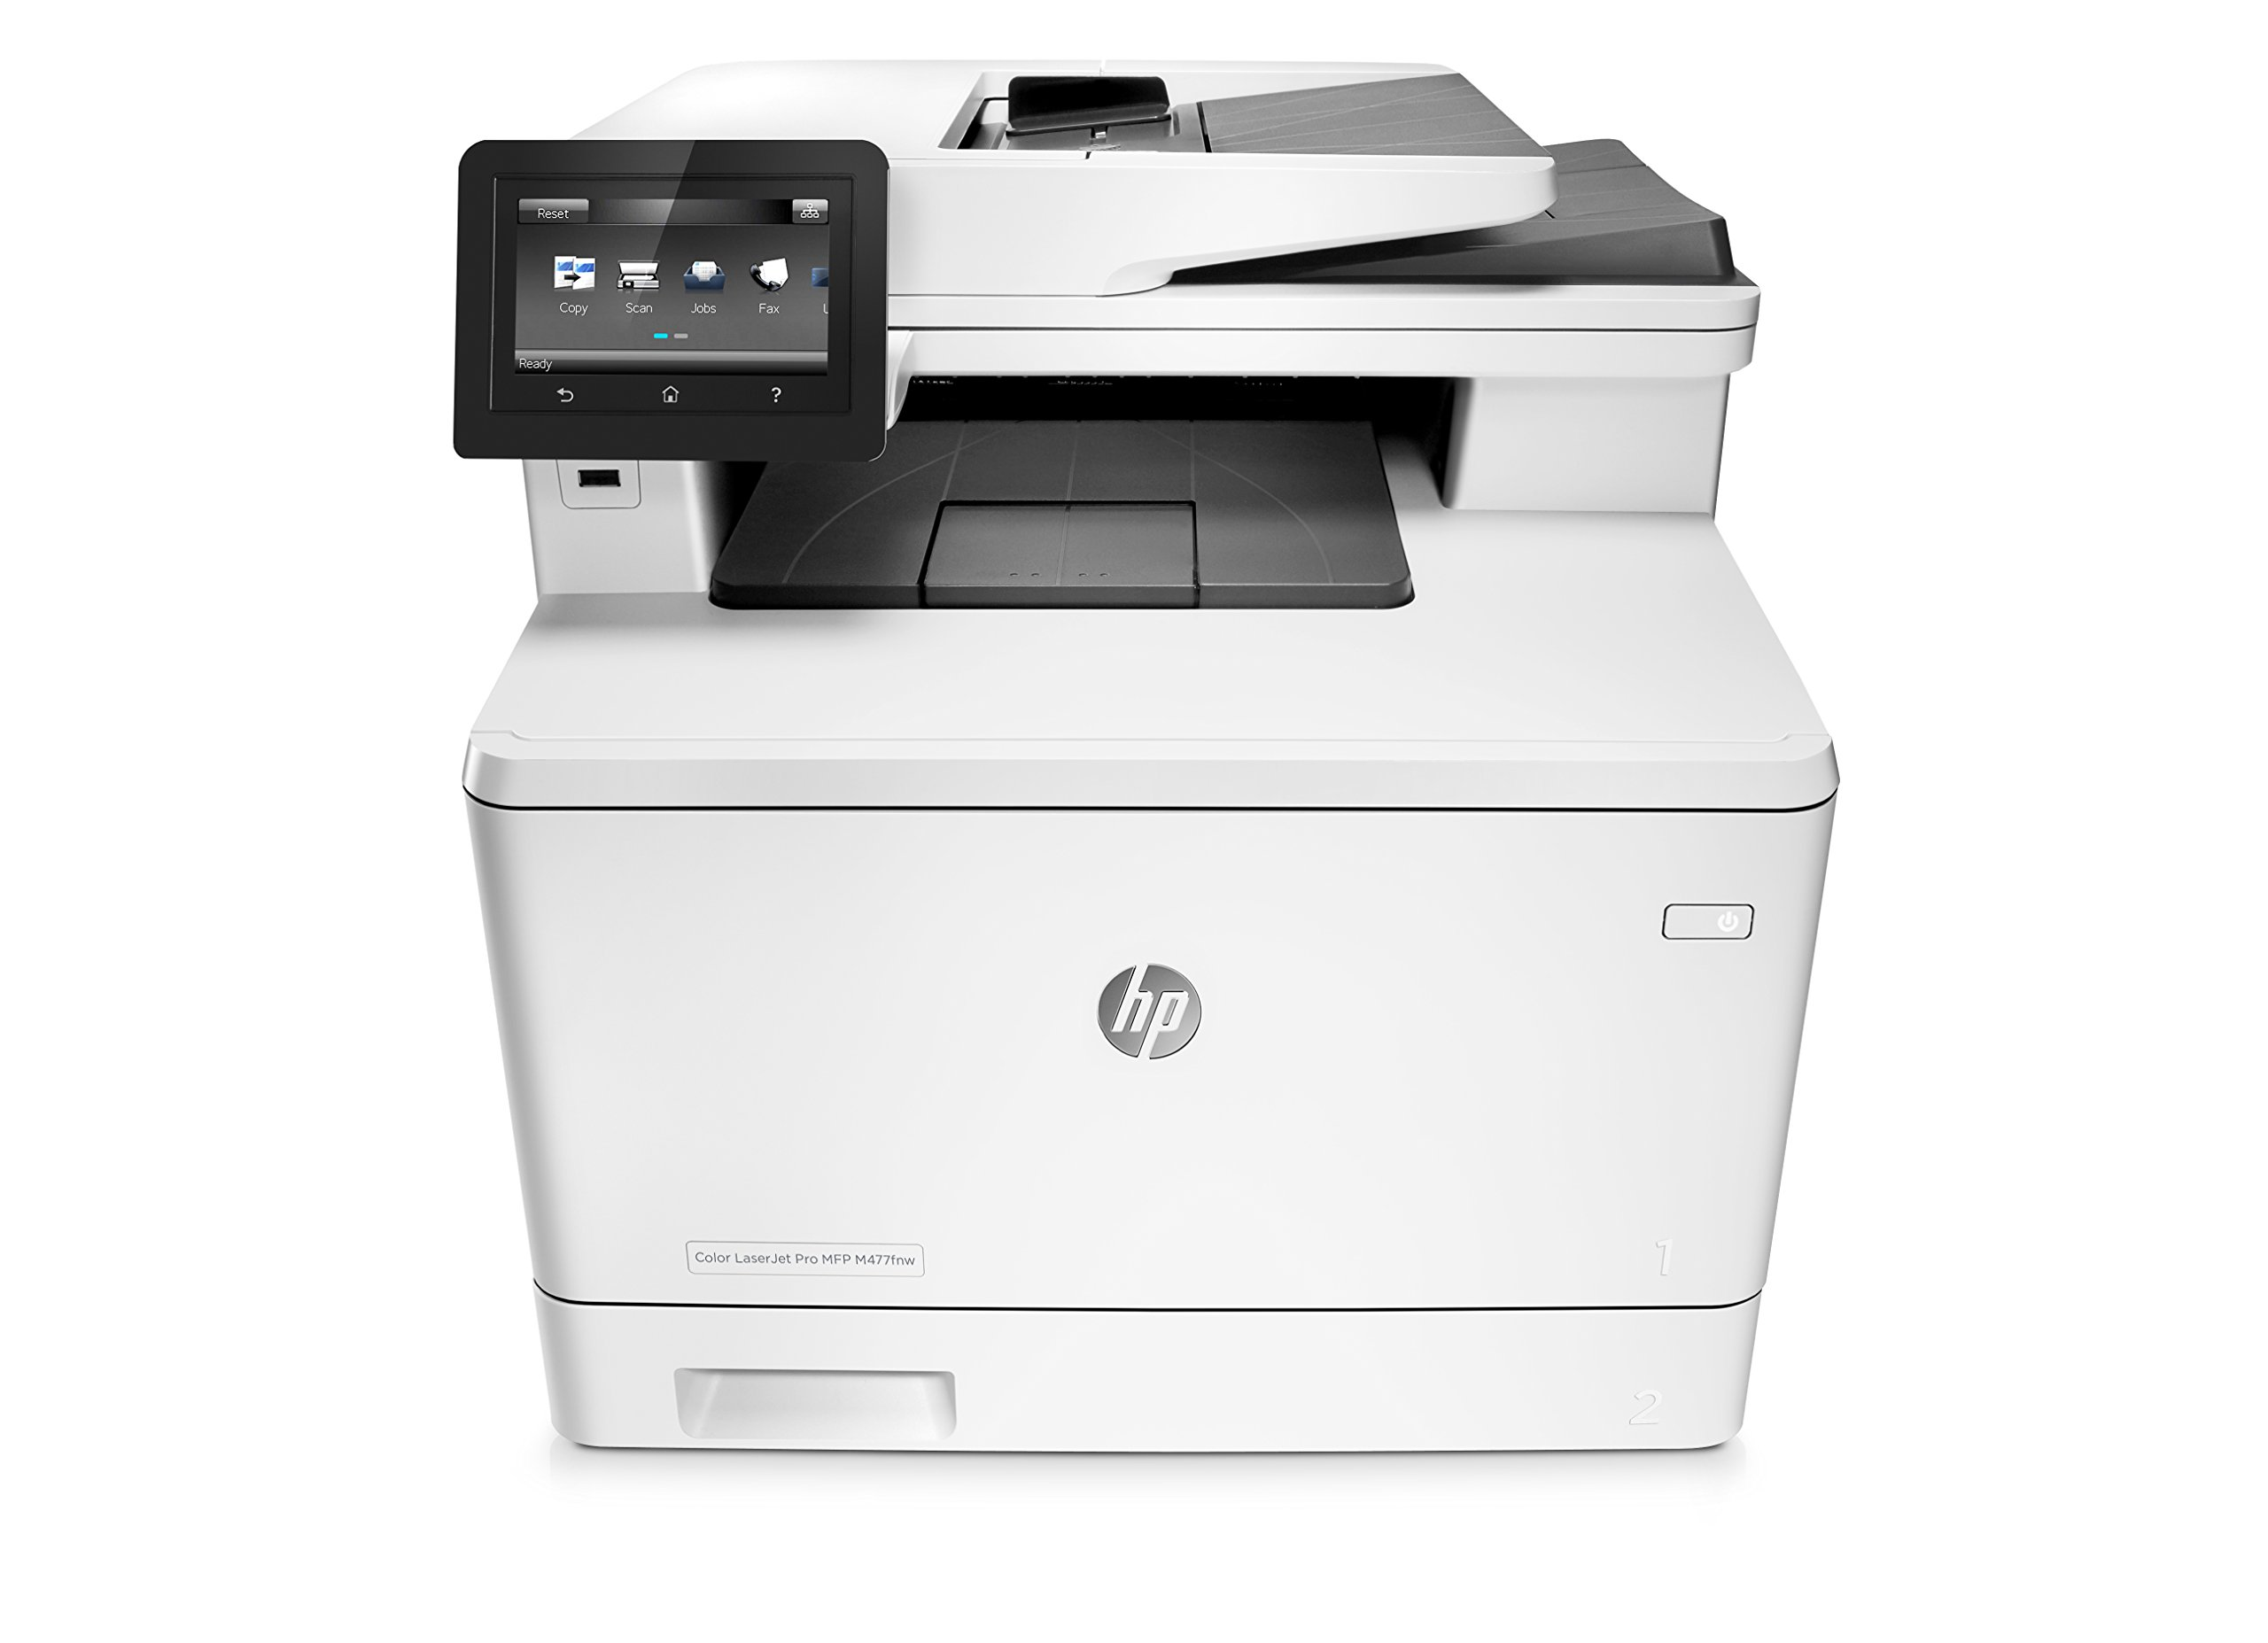 HP LaserJet Pro M477fnw Multifunction Wireless Color Laser Printer with Built-in Ethernet (CF377A) by HP